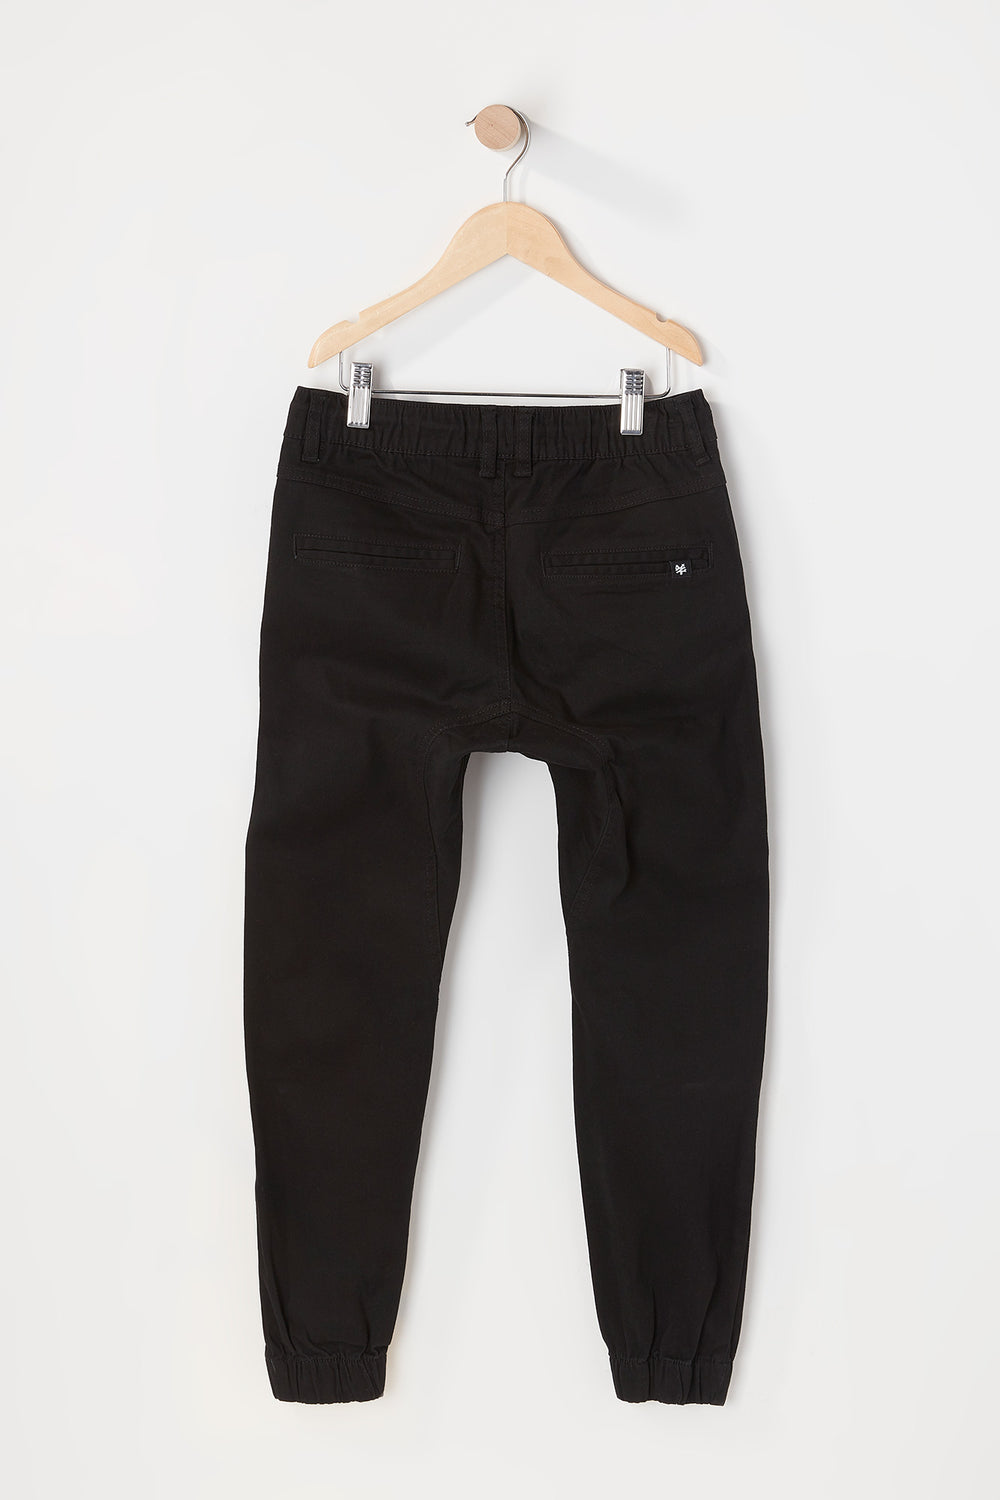 Zoo York Youth Solid Twill Zip Jogger Black